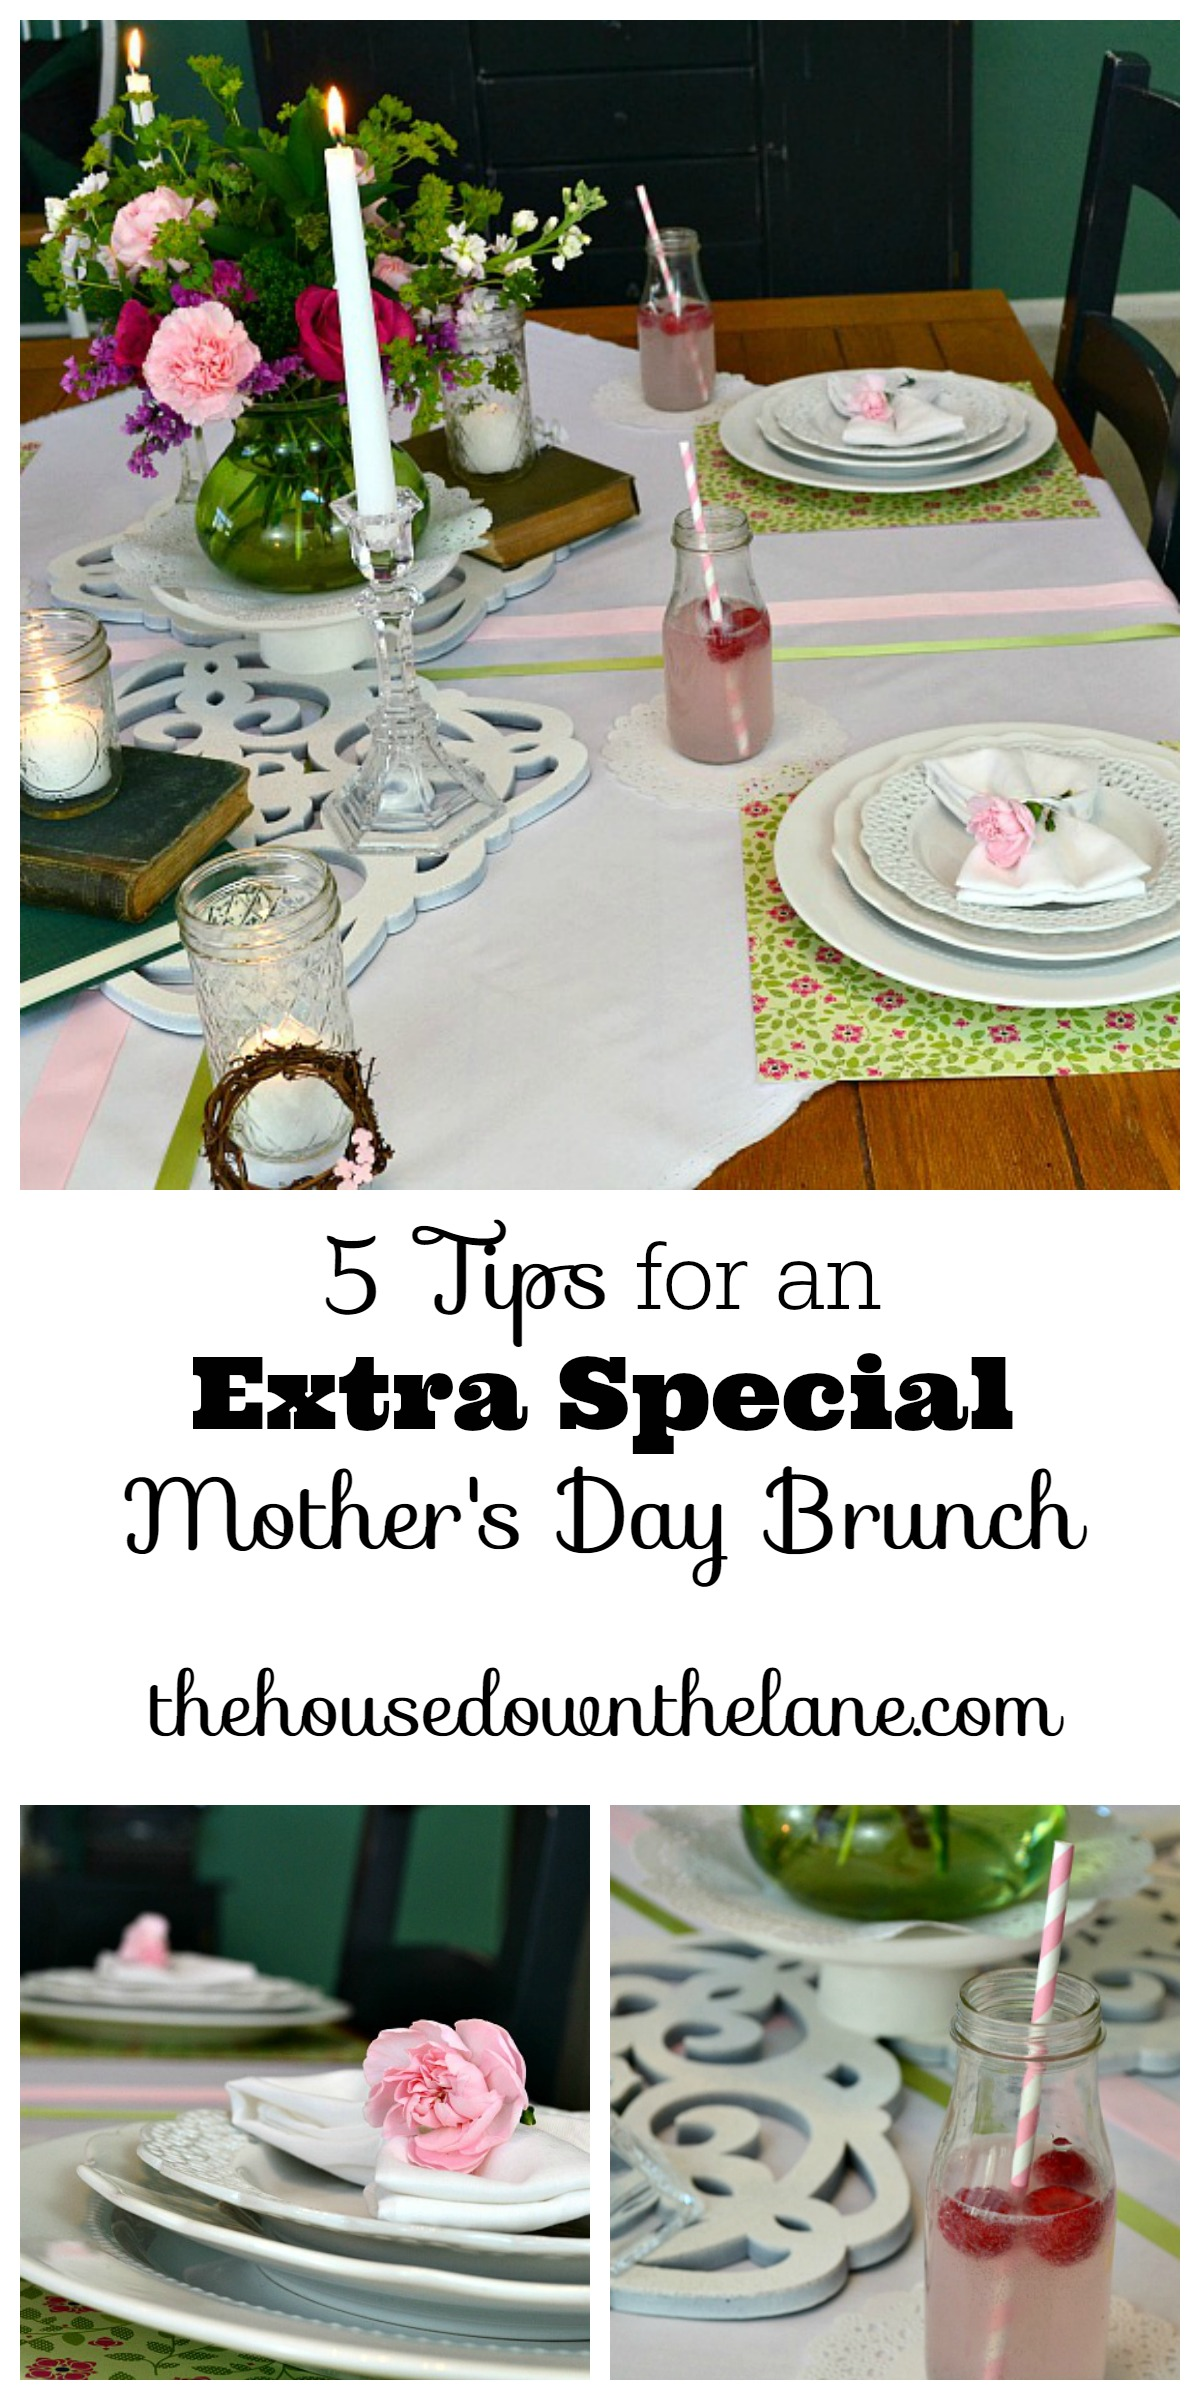 5 Tips for an Extra Special Mother's Day Brunch! | The House Down the Lane